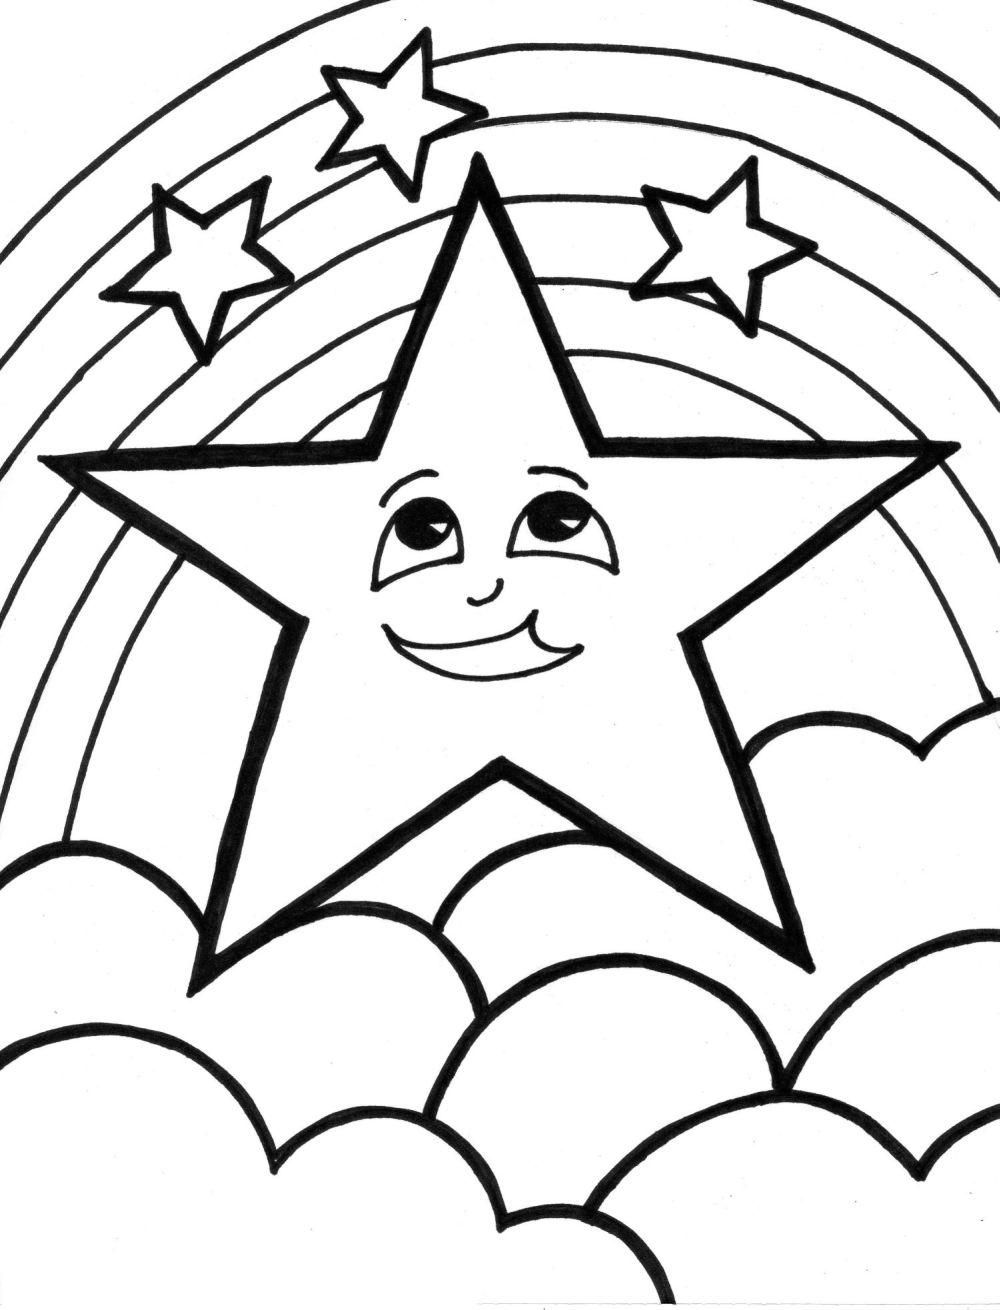 Free printable star coloring pages for kids star for Star coloring pages printable